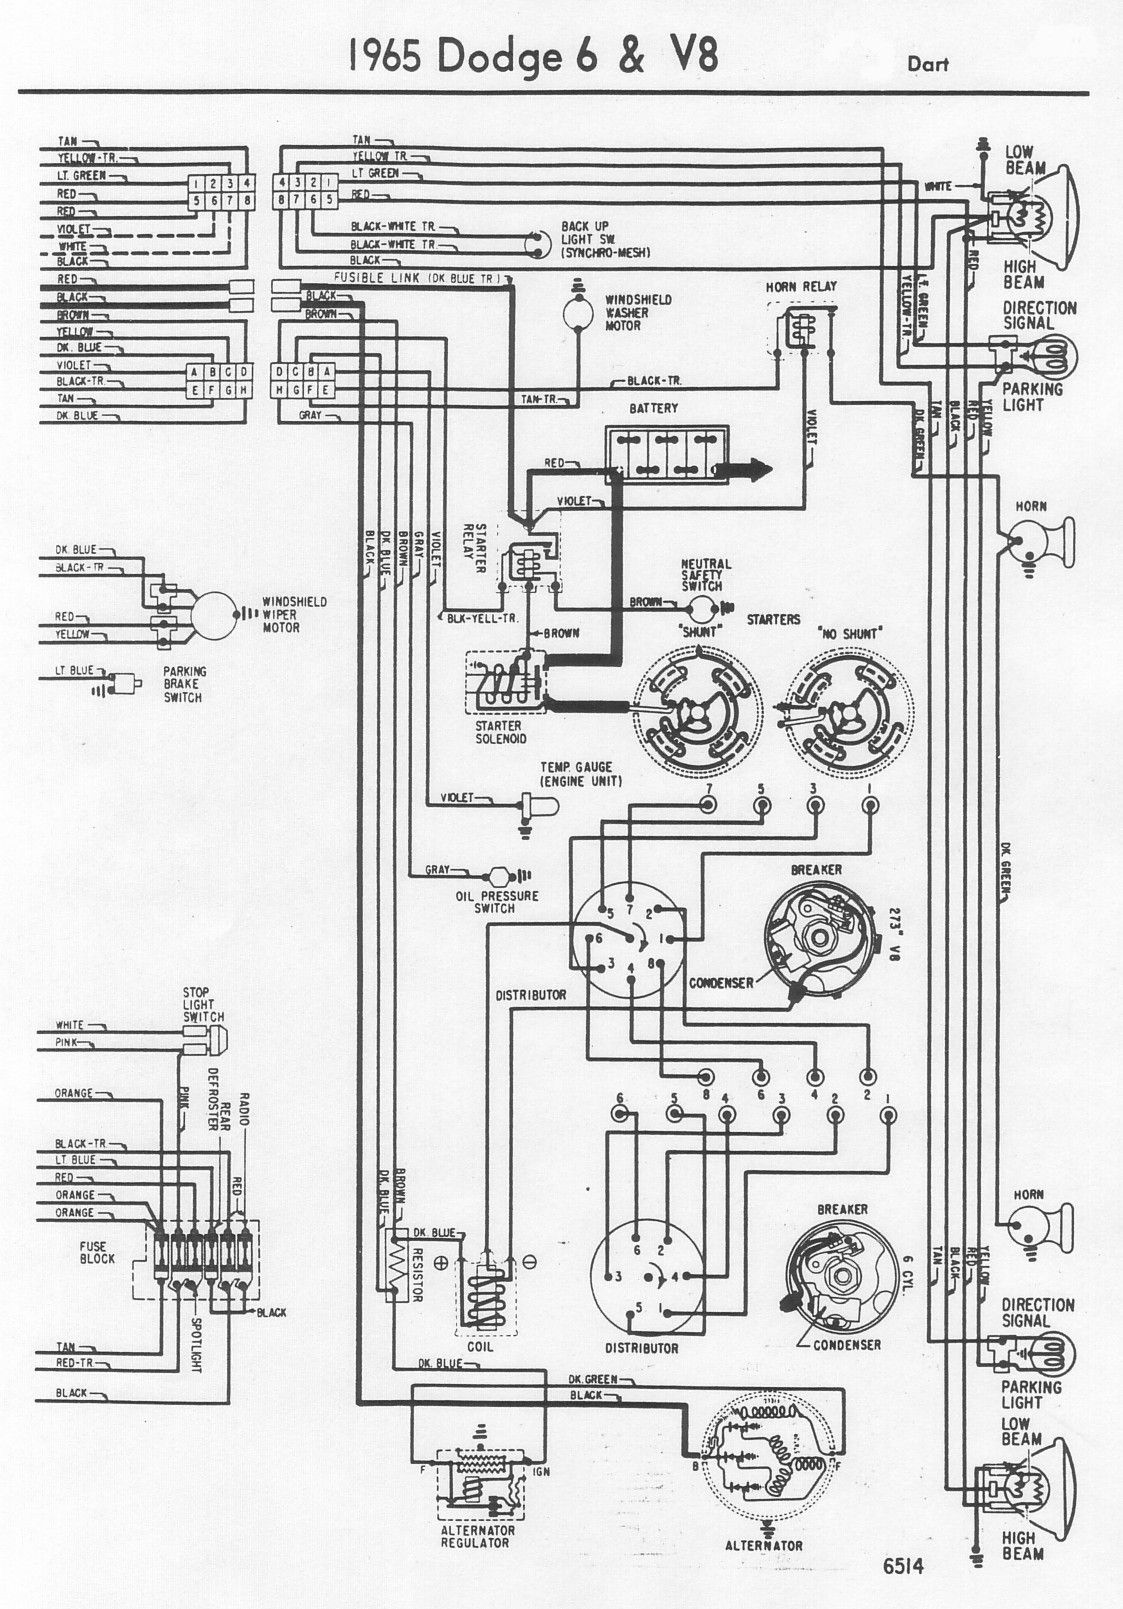 65 front wiring diagram mopar muscle pinterest diagram and mopar rh pinterest com